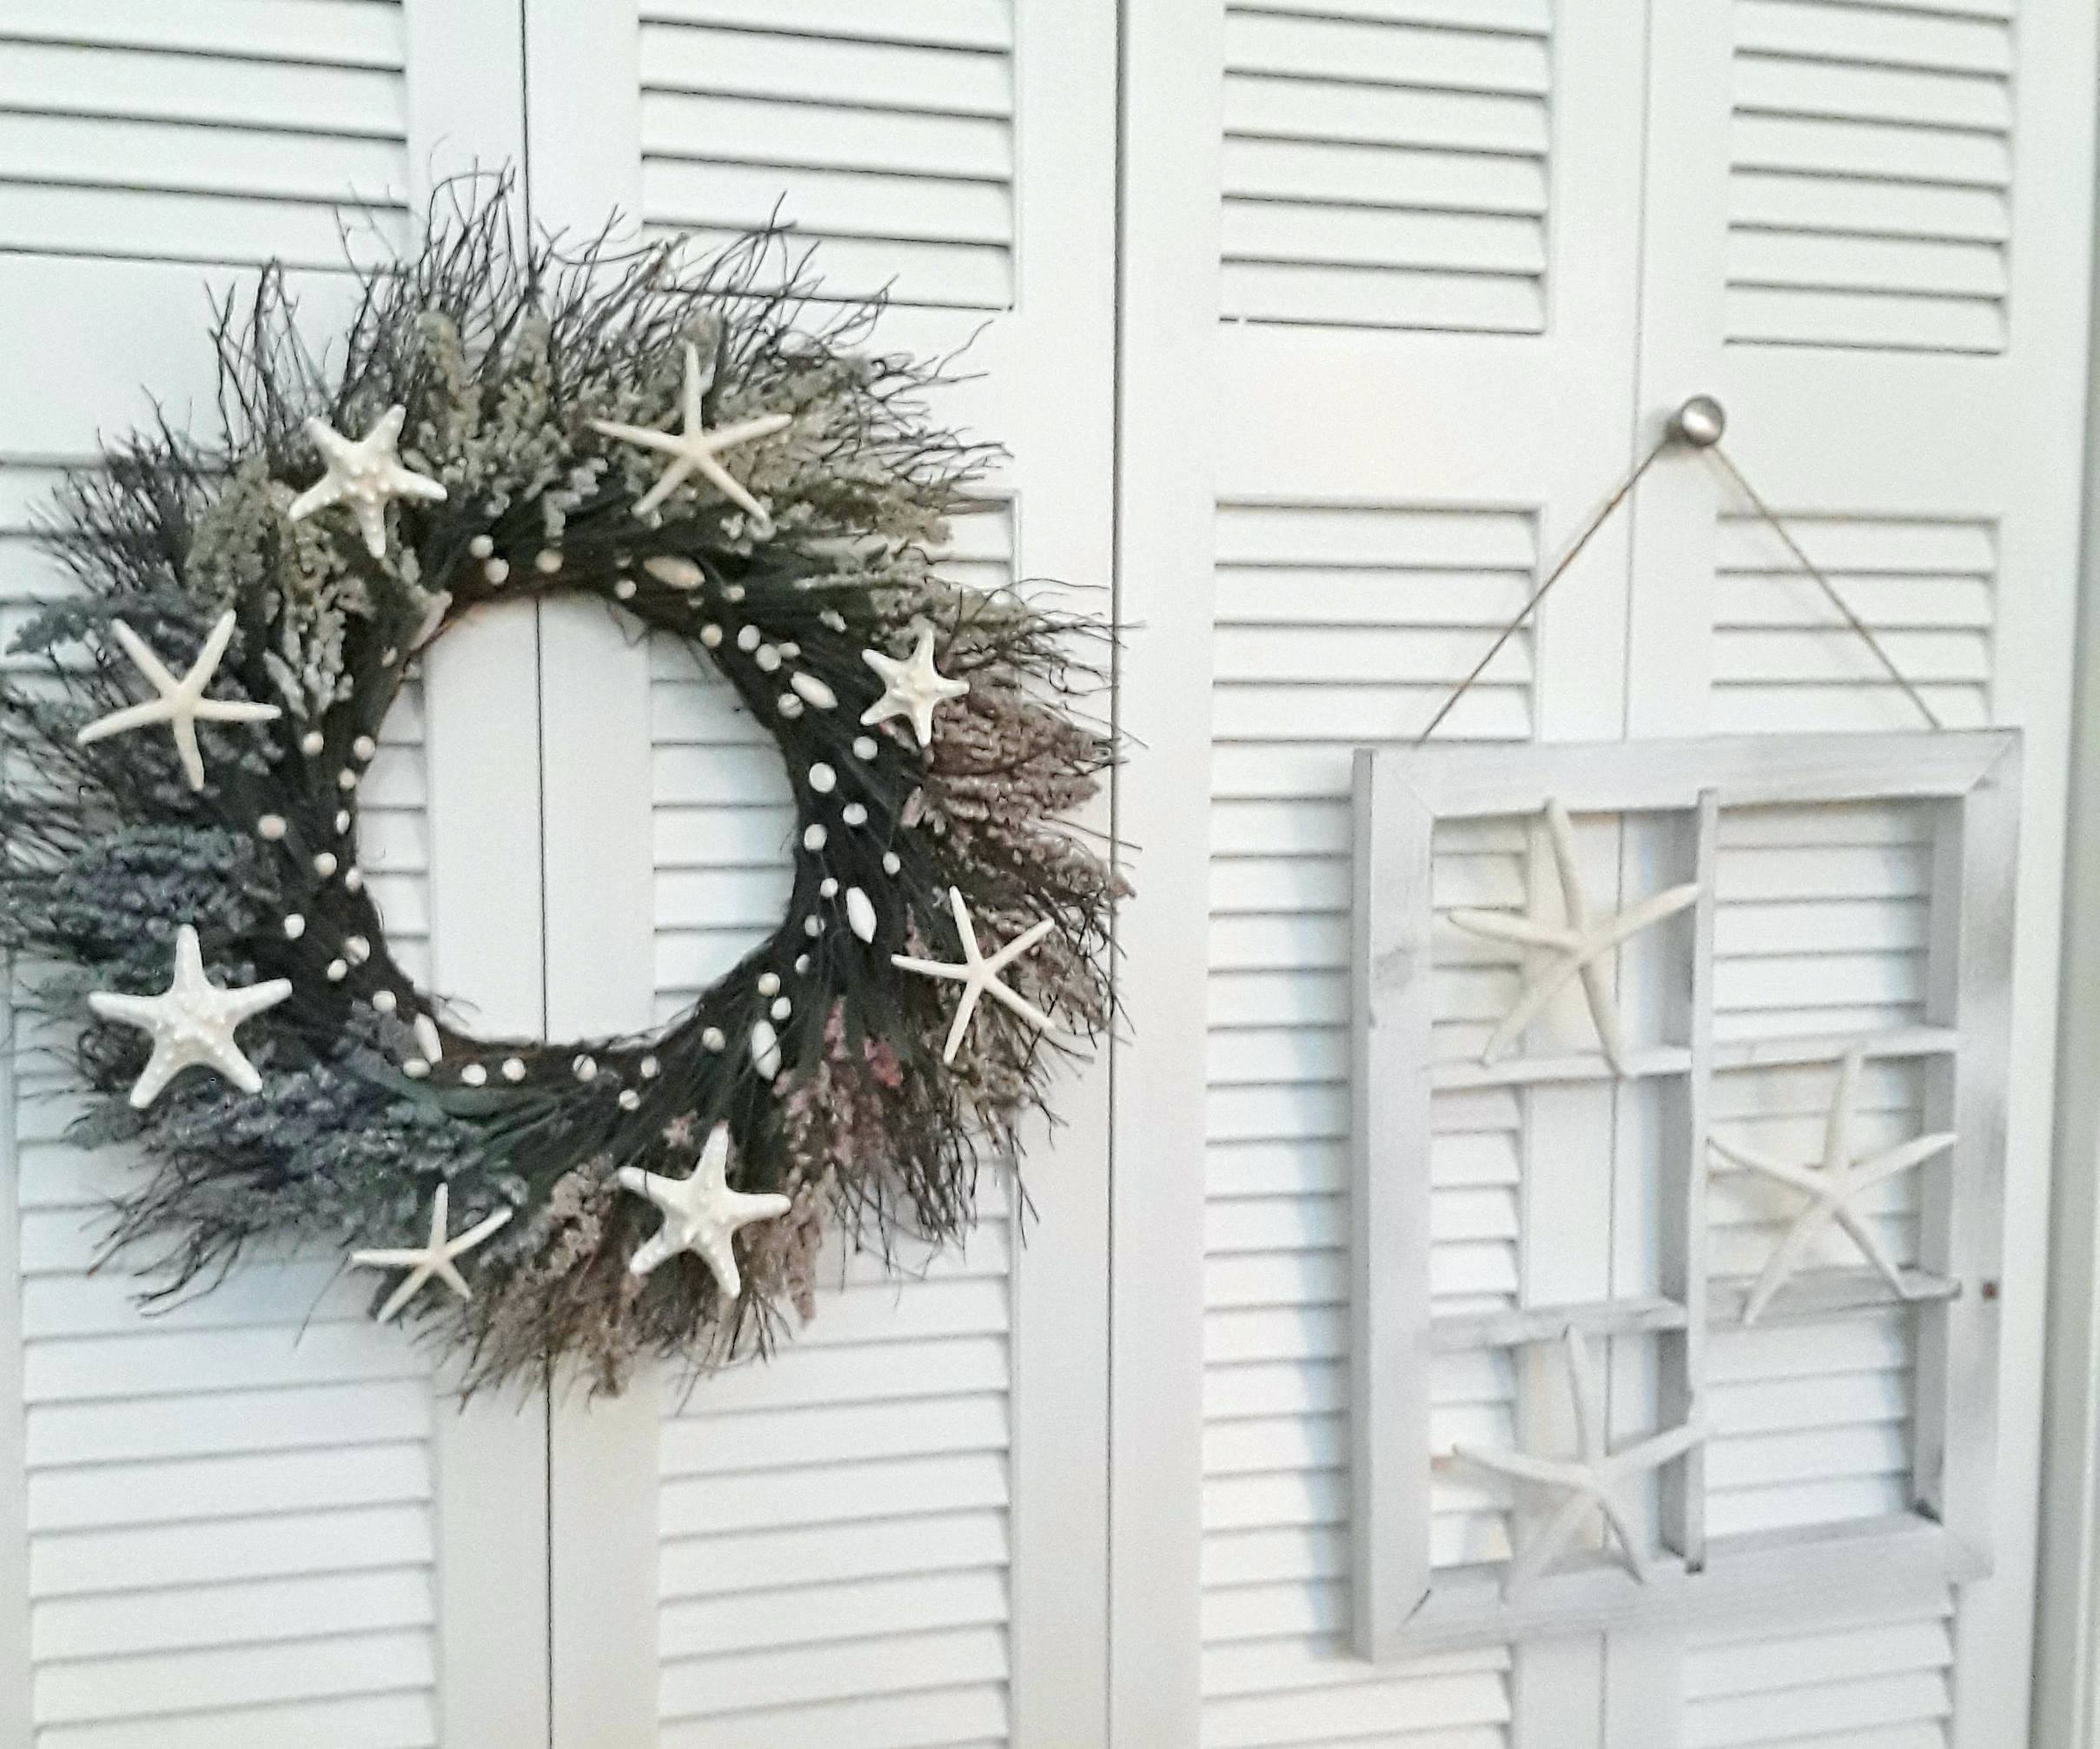 Window Frame Wall Decor Starfish Wreath Rustic Hangings with Old Rustic Barn Window Frame (Image 30 of 30)